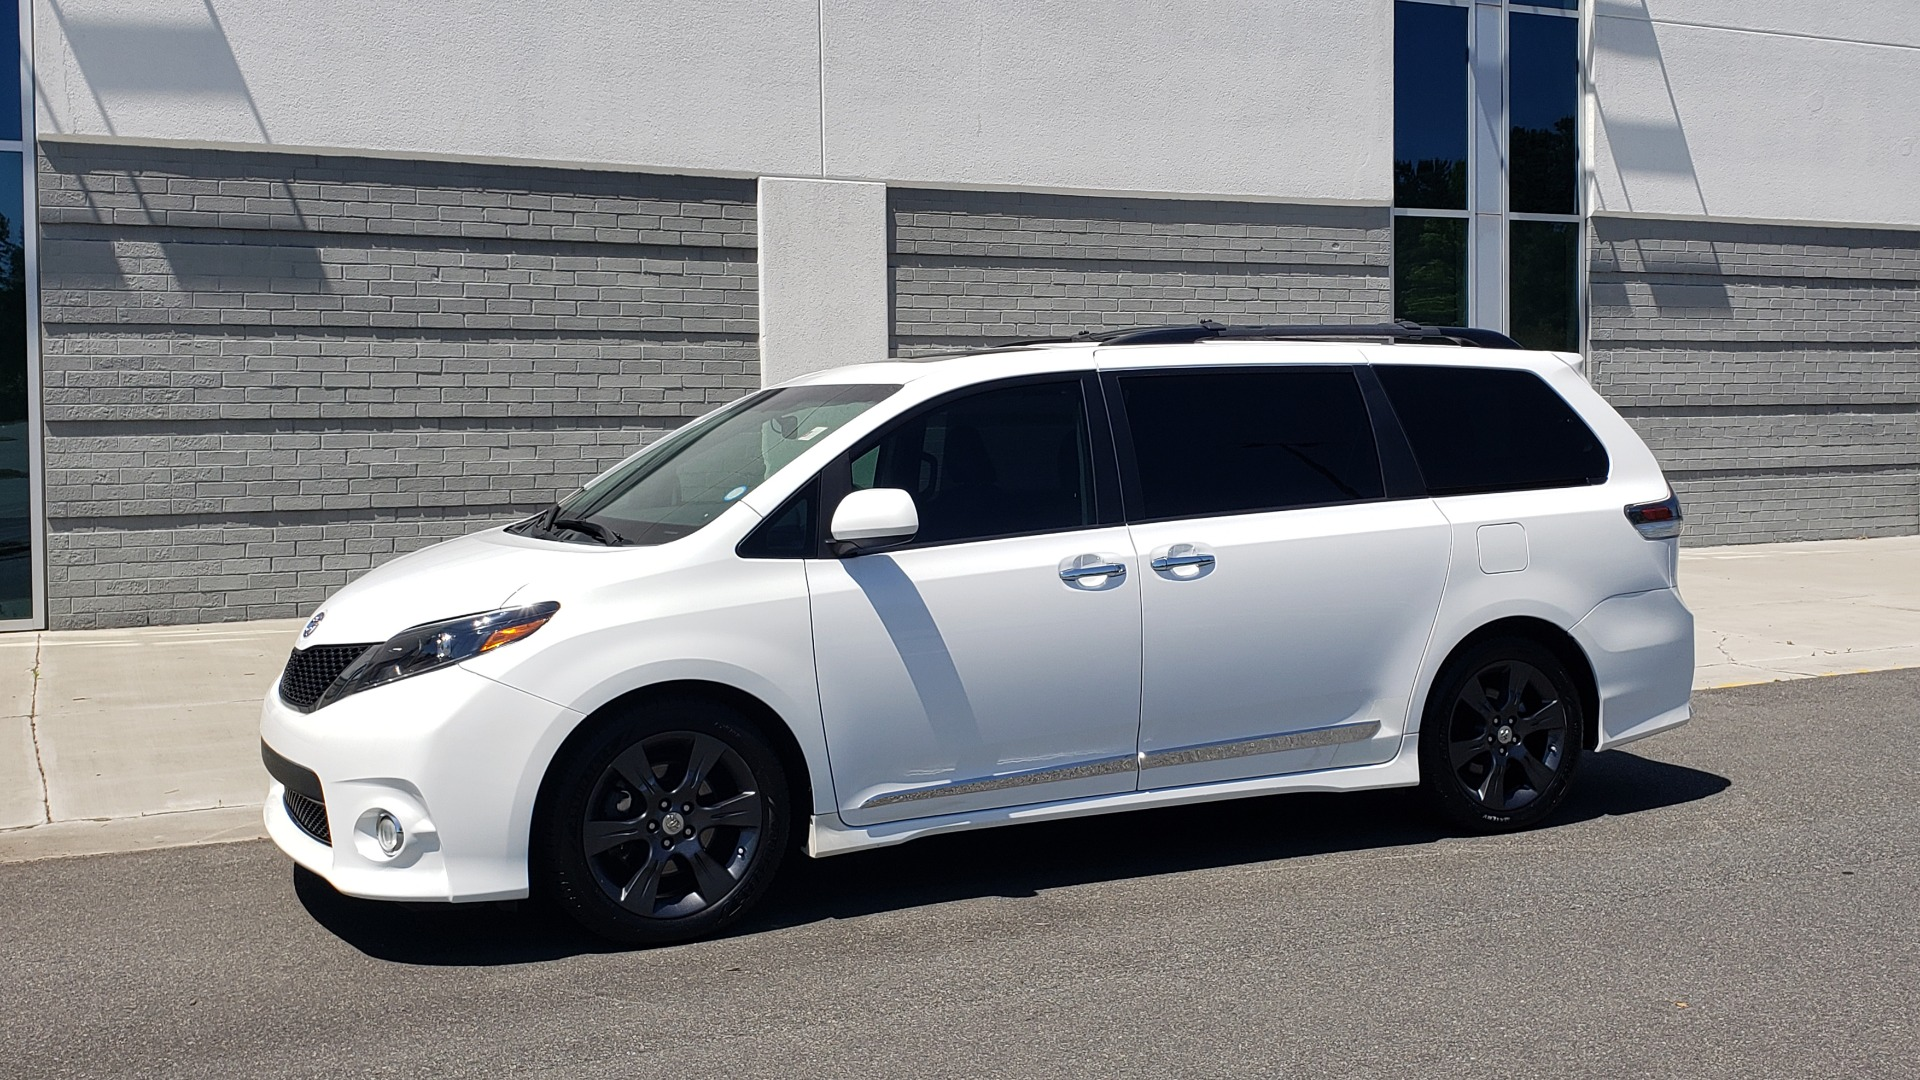 Used 2015 Toyota SIENNA SE 3.5L / FWD / 3-ROWS / 8-PASS / SUNROOF / DVD / REARVIEW for sale $21,995 at Formula Imports in Charlotte NC 28227 3